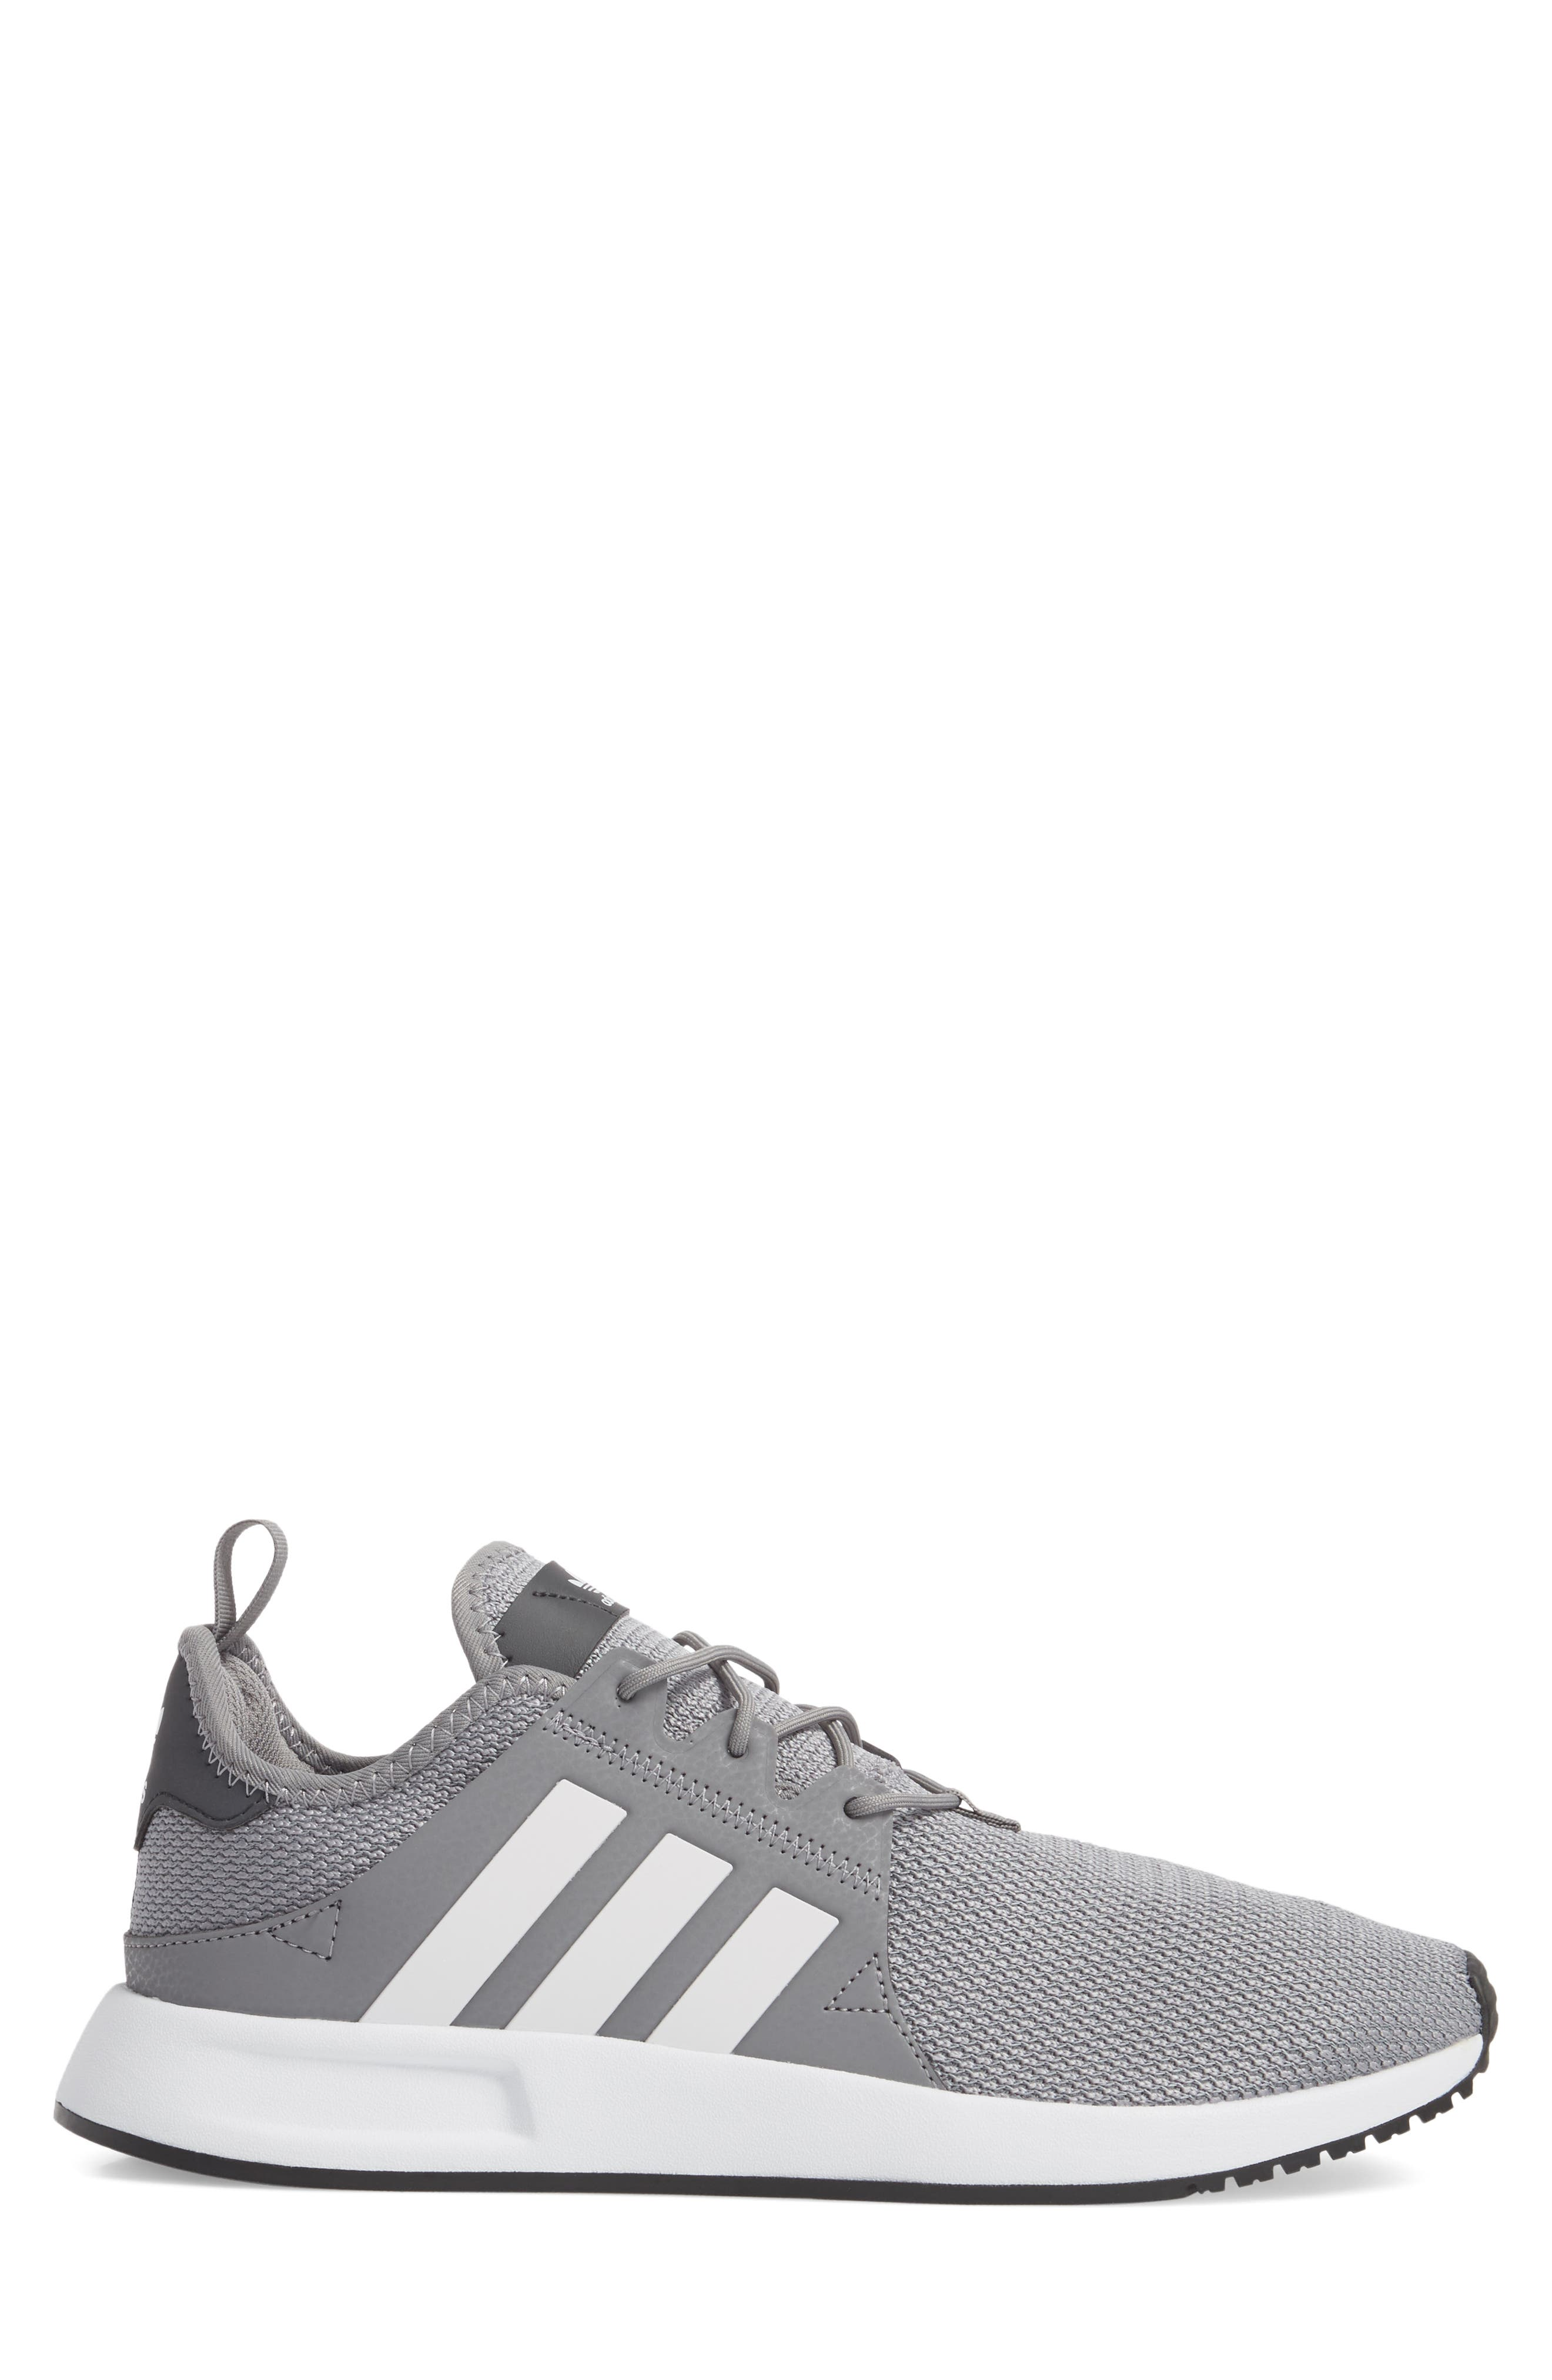 X_PLR Sneaker,                             Alternate thumbnail 3, color,                             Grey/ White/ Carbon